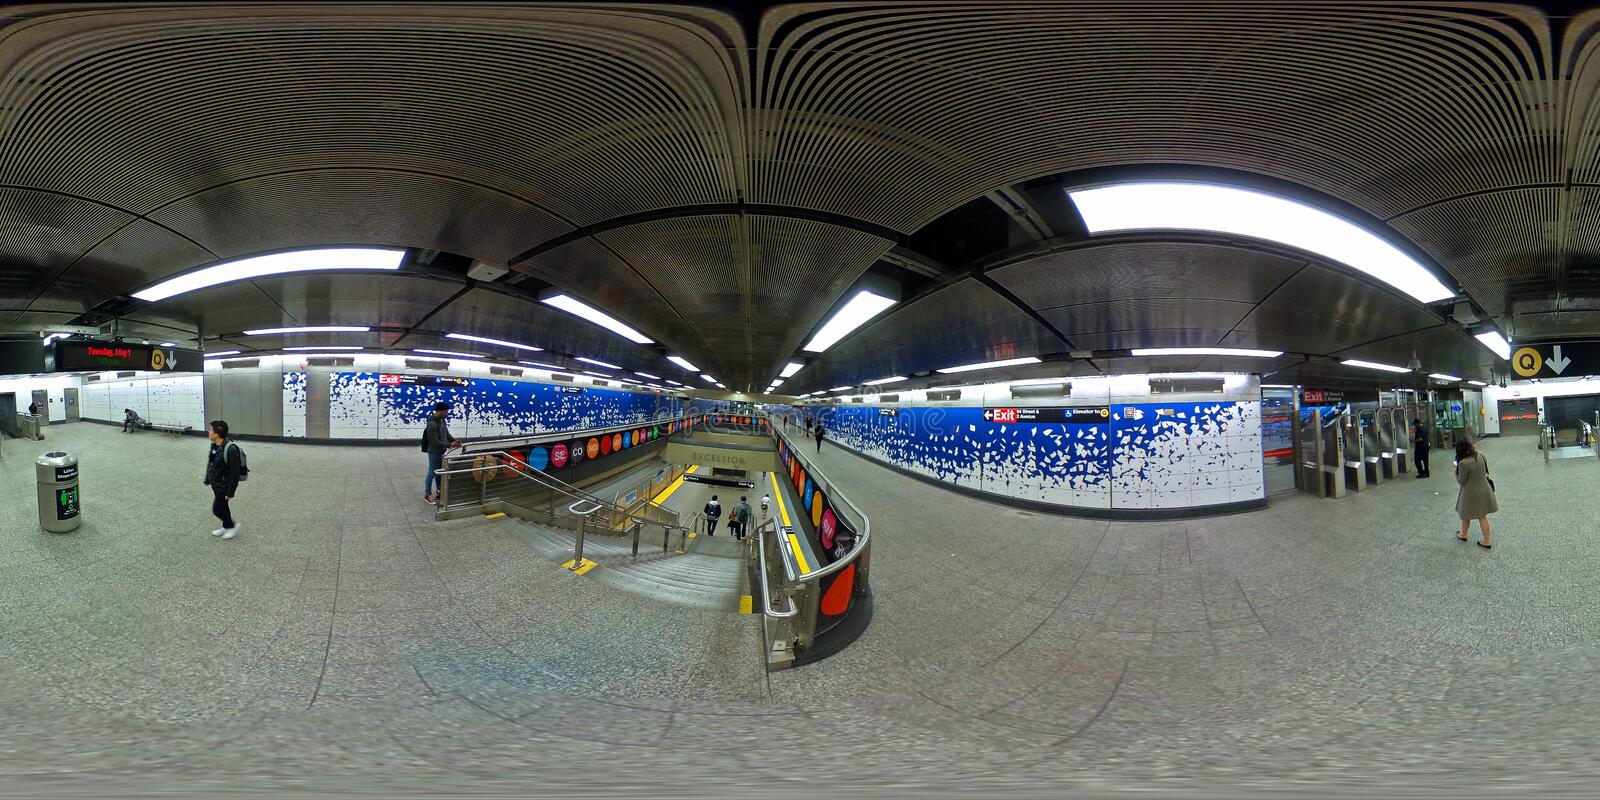 NYC subway station at 96th Street in 360 VR format stock images